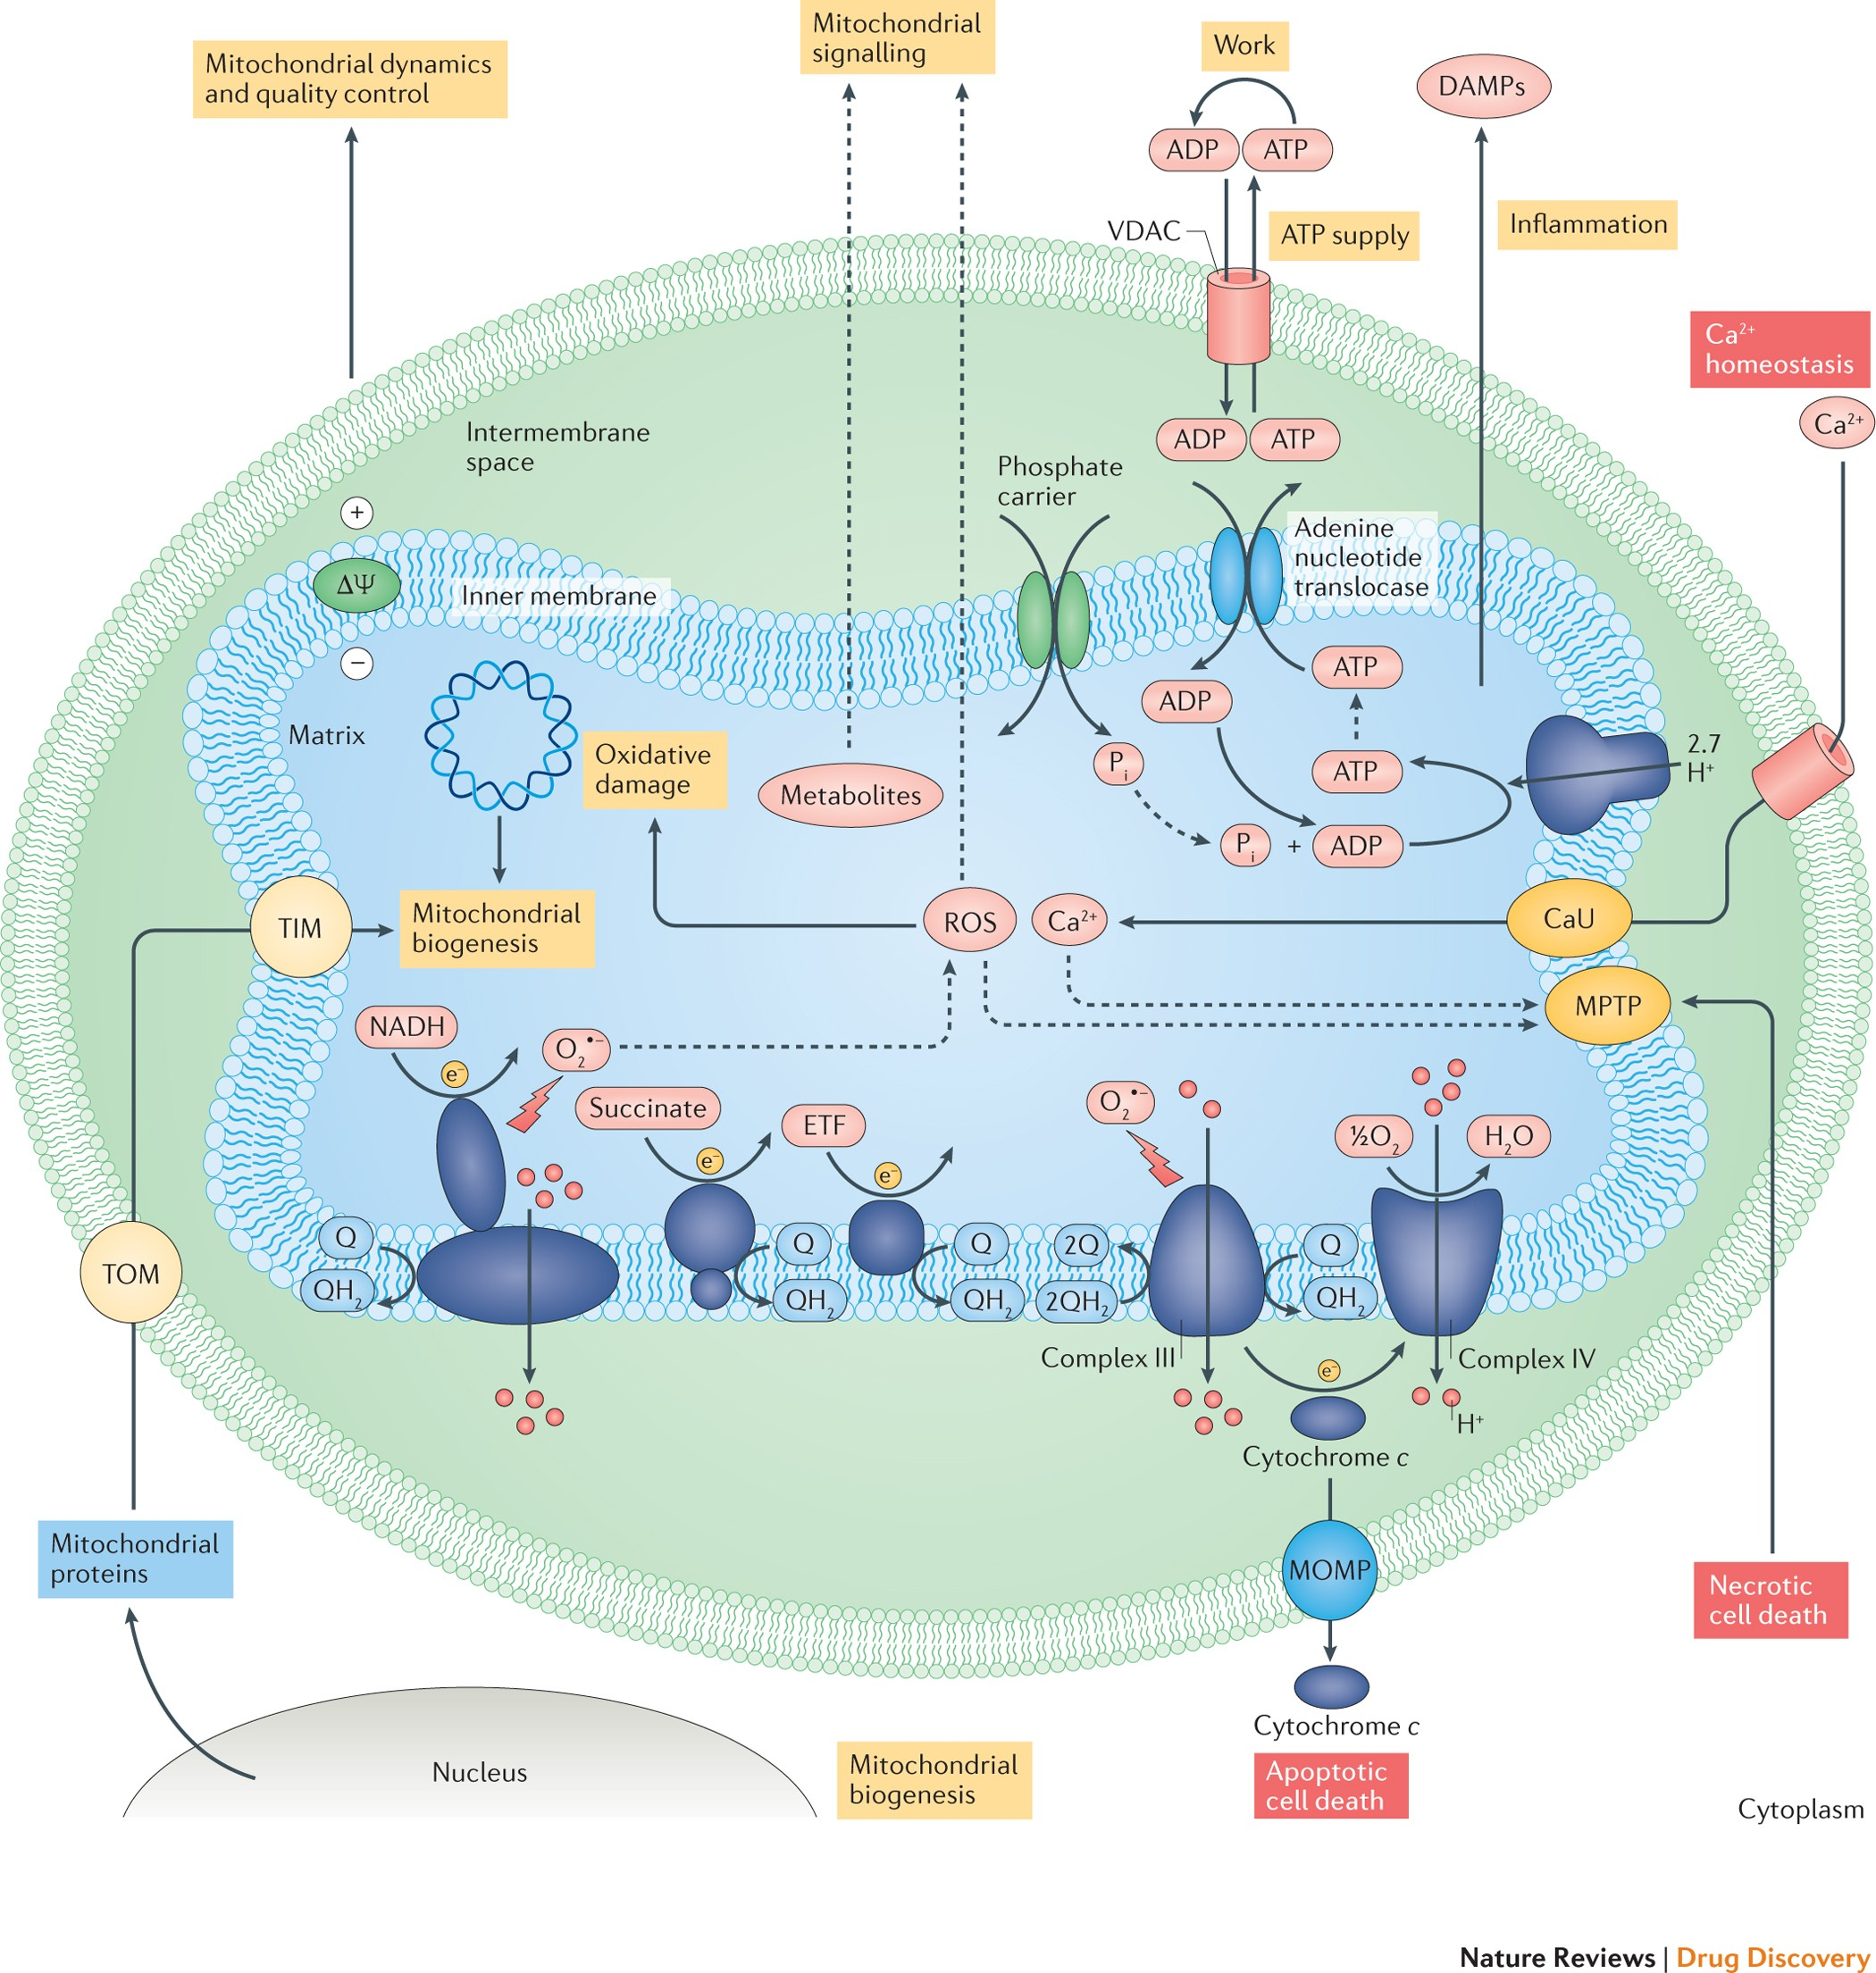 Mitochondria As A Therapeutic Target For Common Pathologies